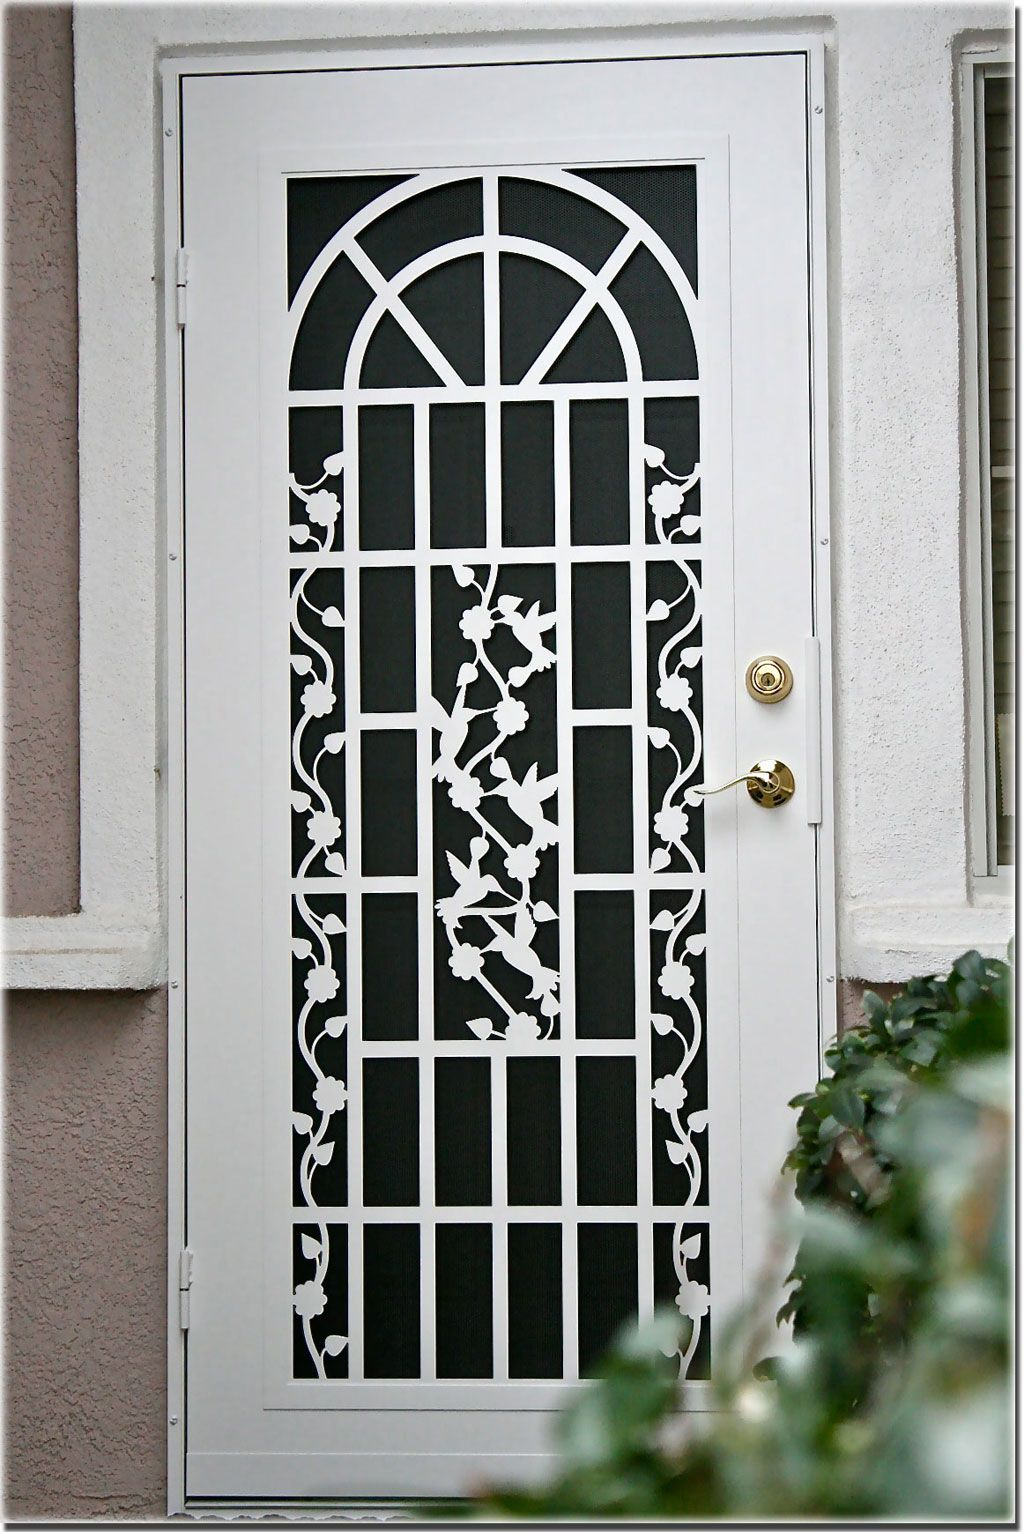 decorative security screen doors. Decorative Security Screen Door - Google Search Doors R